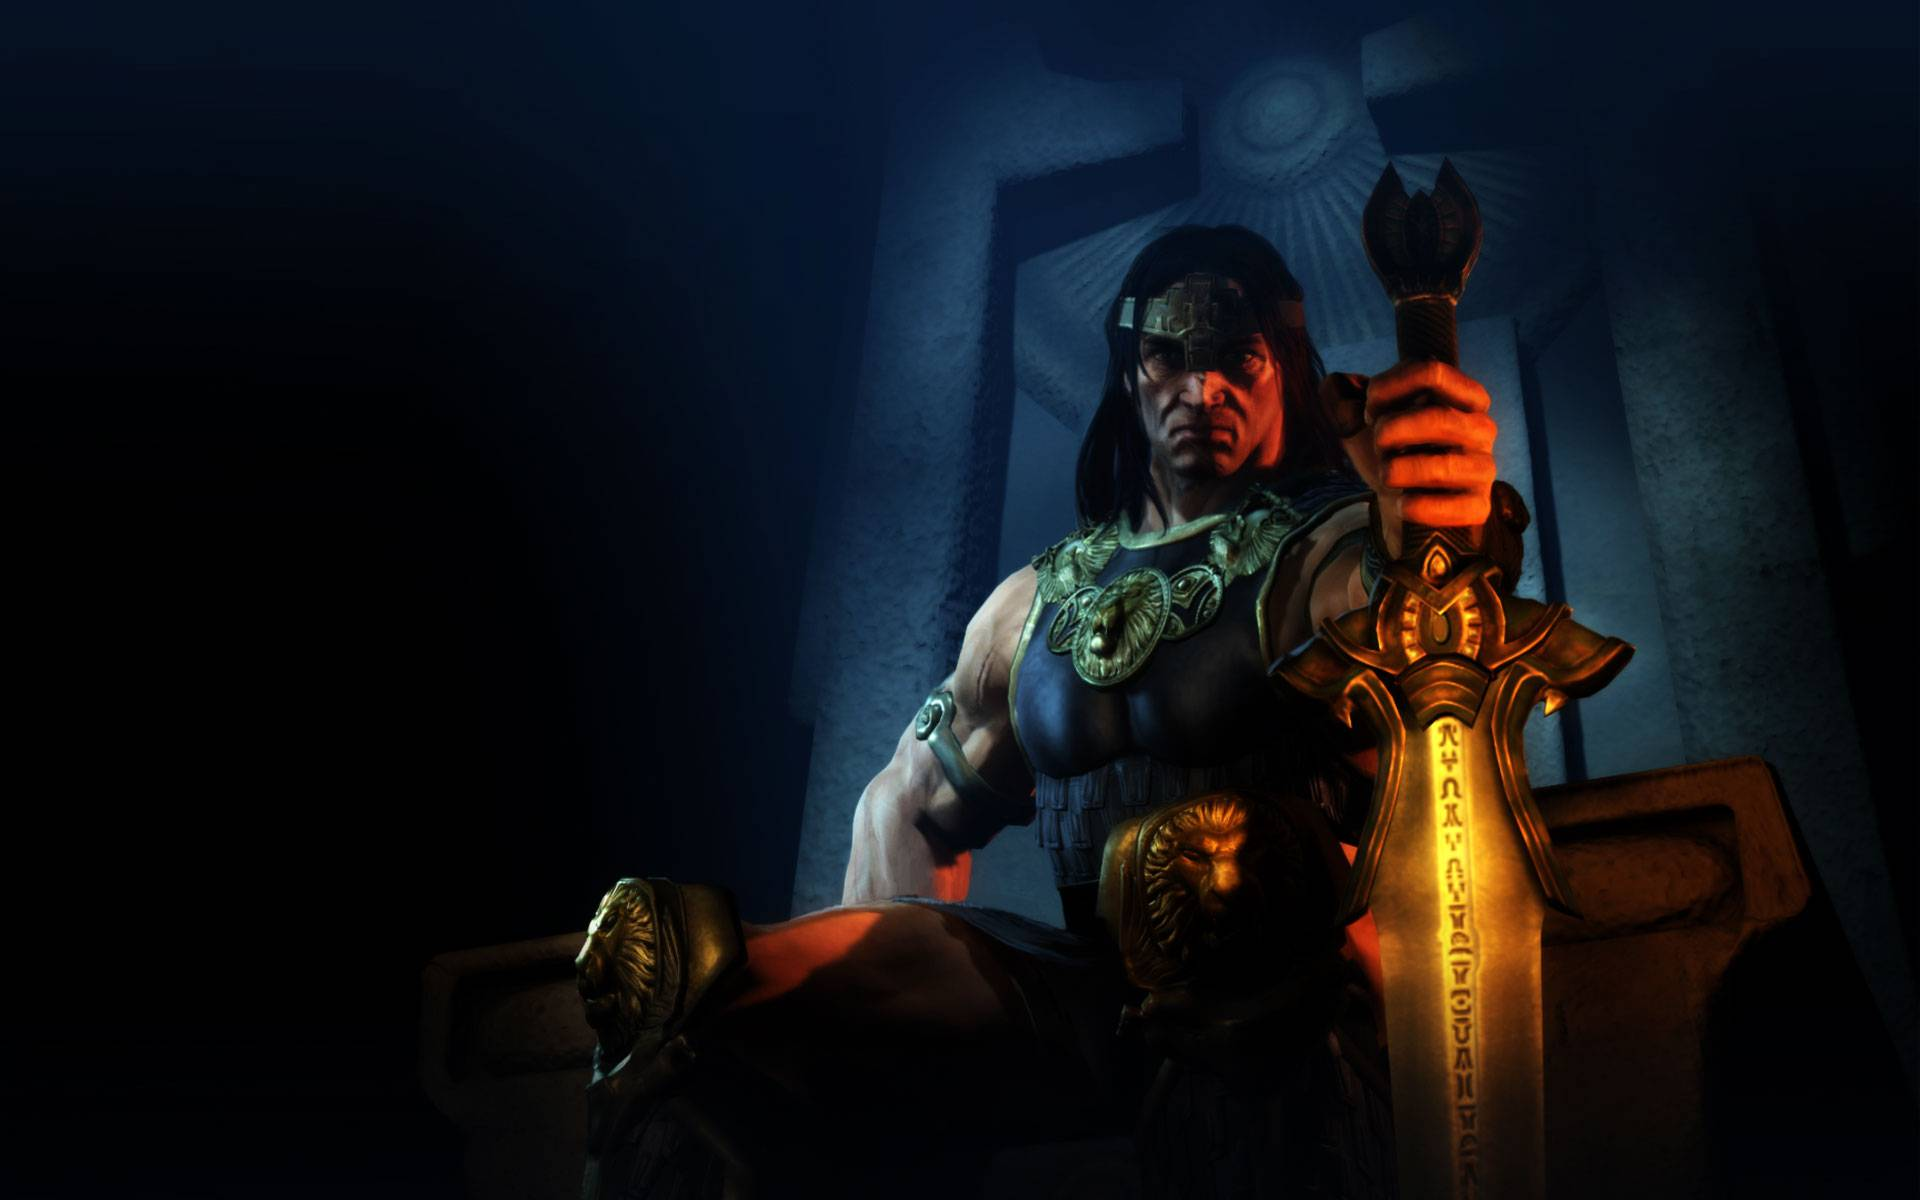 Age of Conan Wallpapers 1920x1200